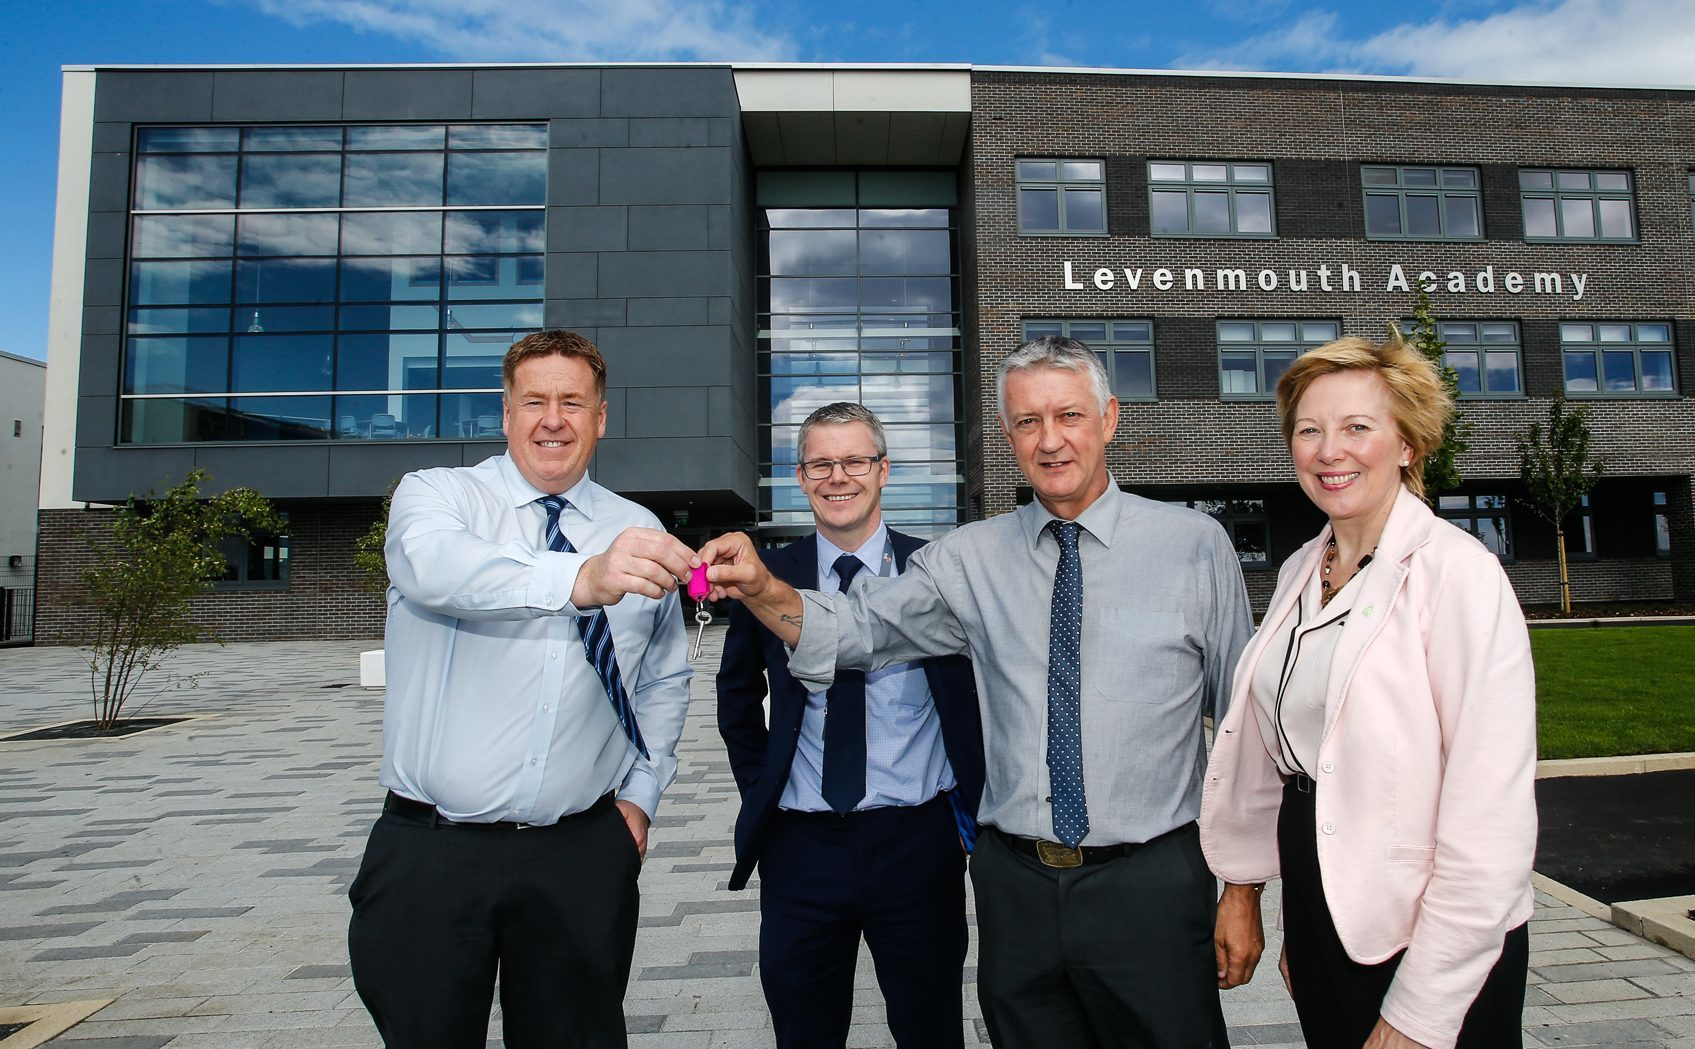 Martin Cooper, of BAM Construction, hands over the keys to Levenmouth Academy to Cllr Tom Adams, chair of the council's Levenmouth area committee and council depute leader Cllr Lesley Laird